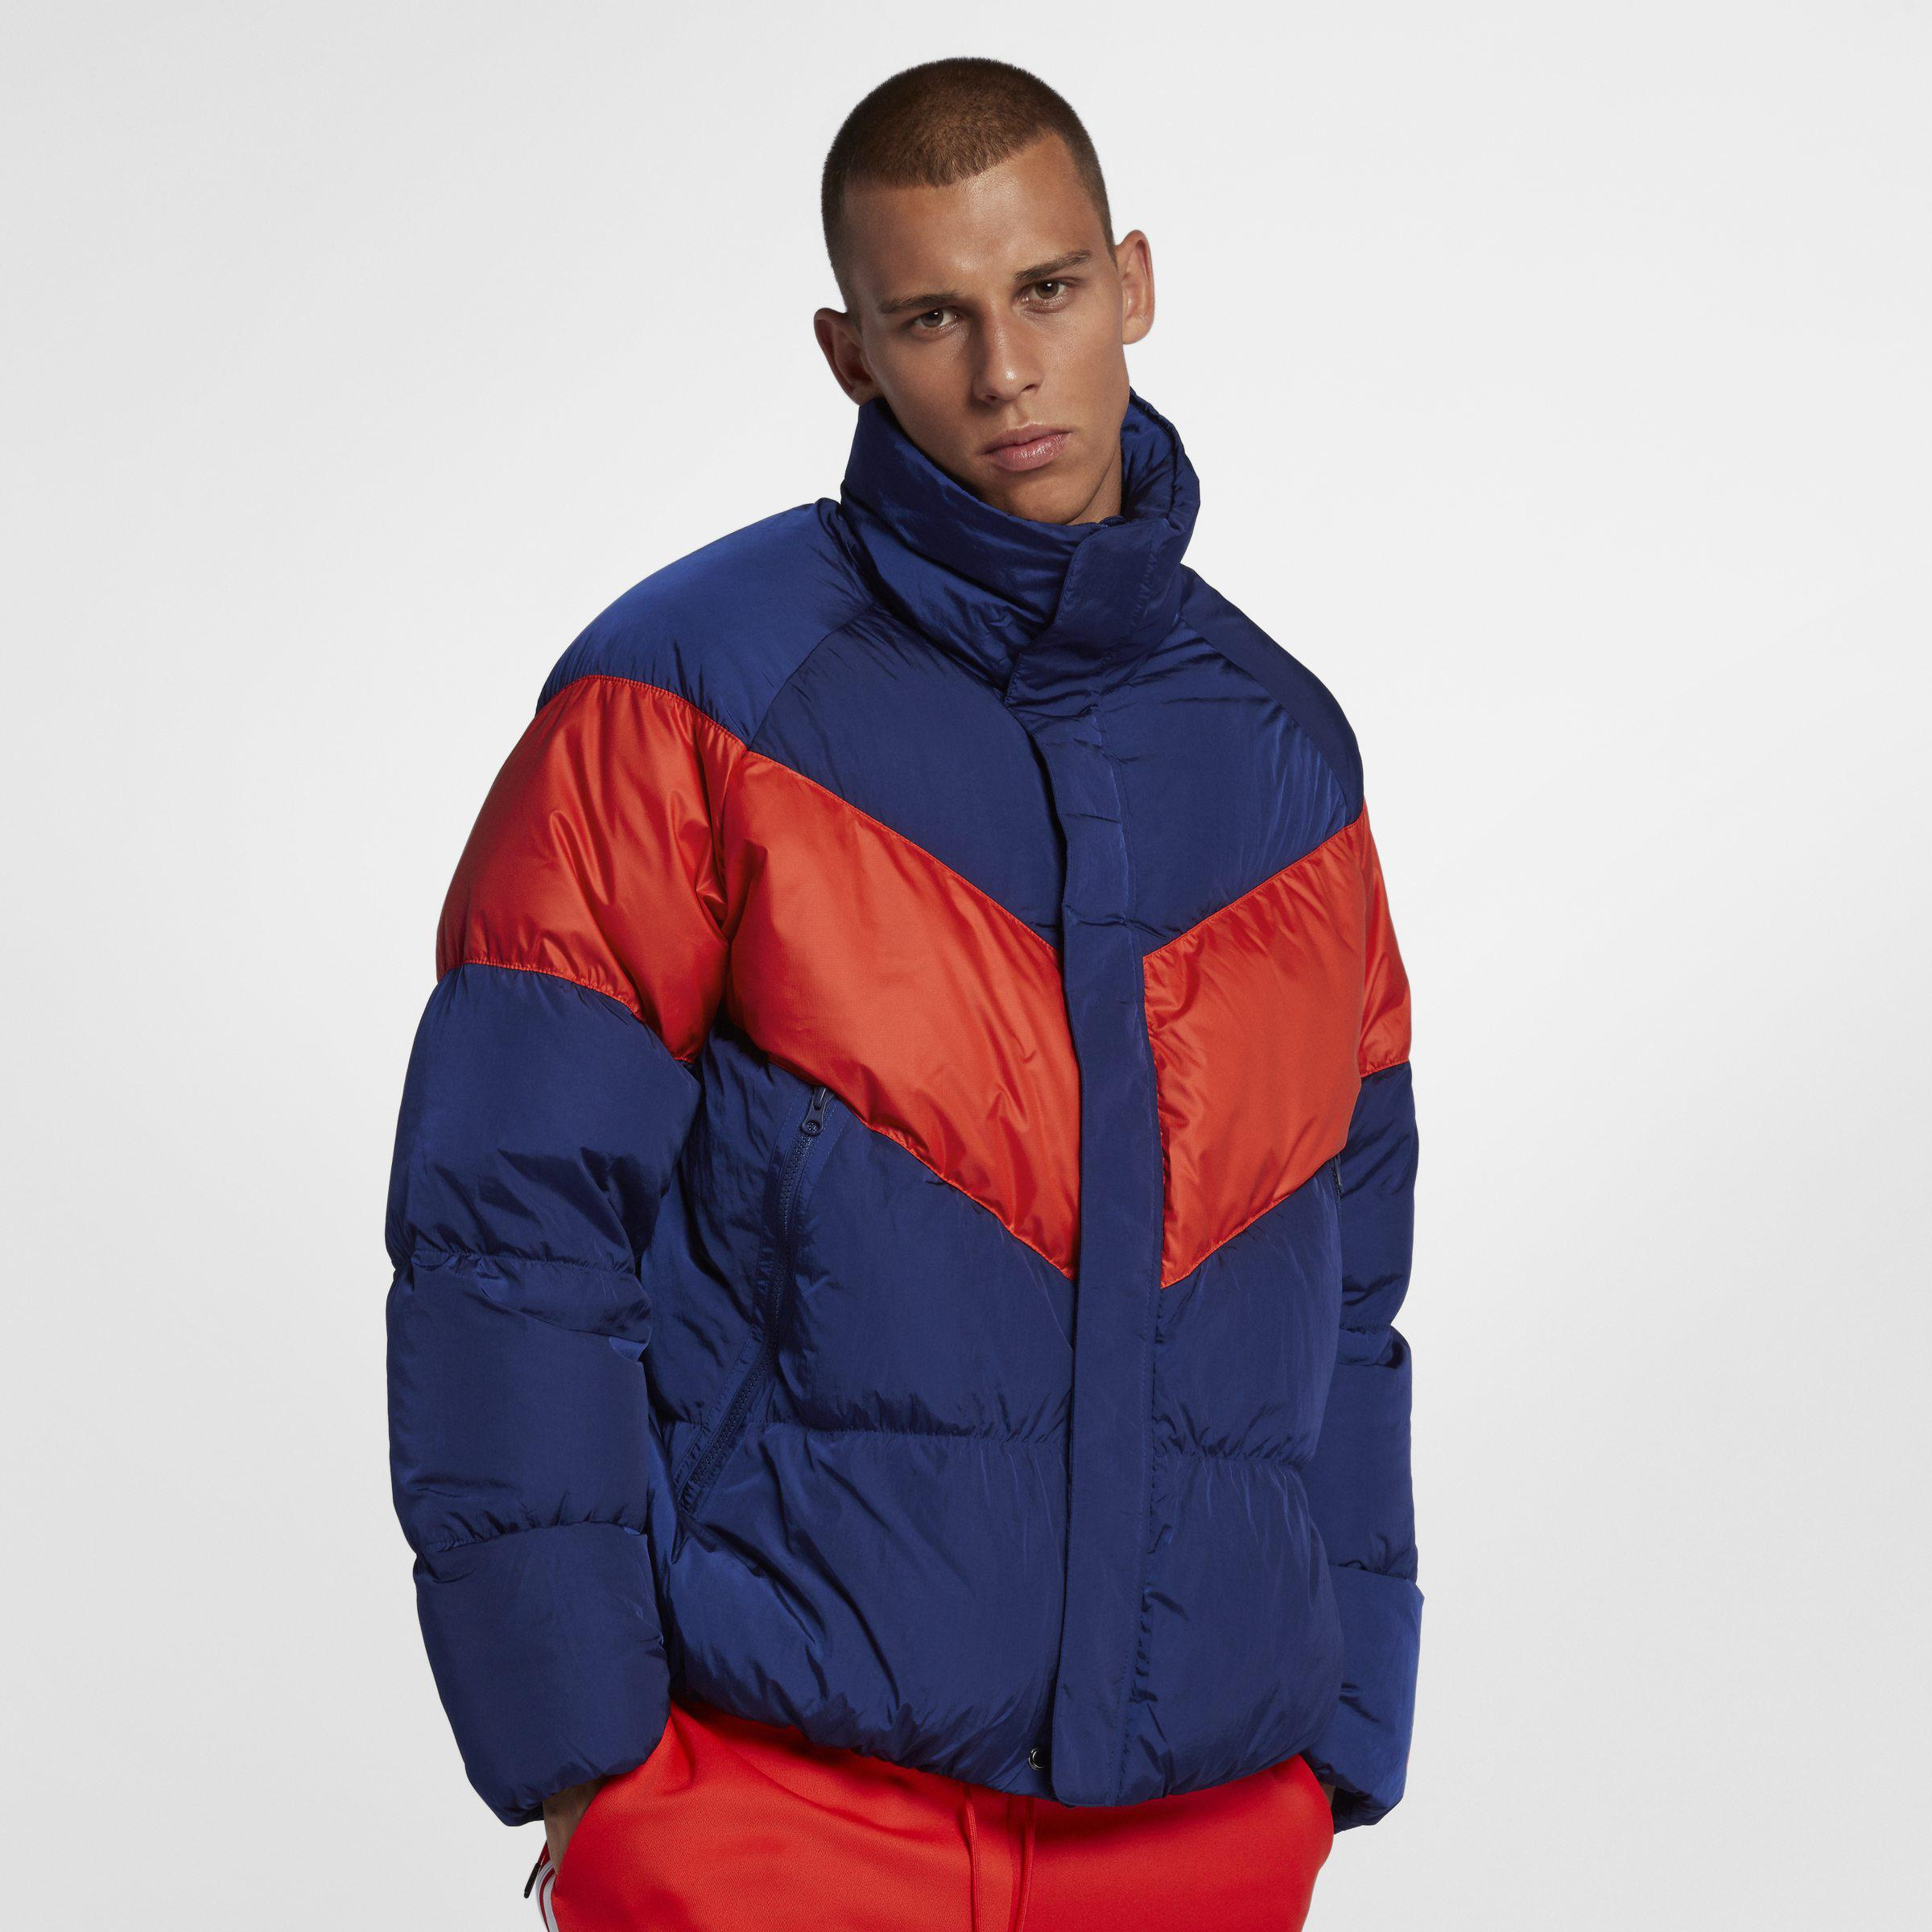 9cdf20d50439 Nike Sportswear Down Fill Jacket in Blue for Men - Lyst